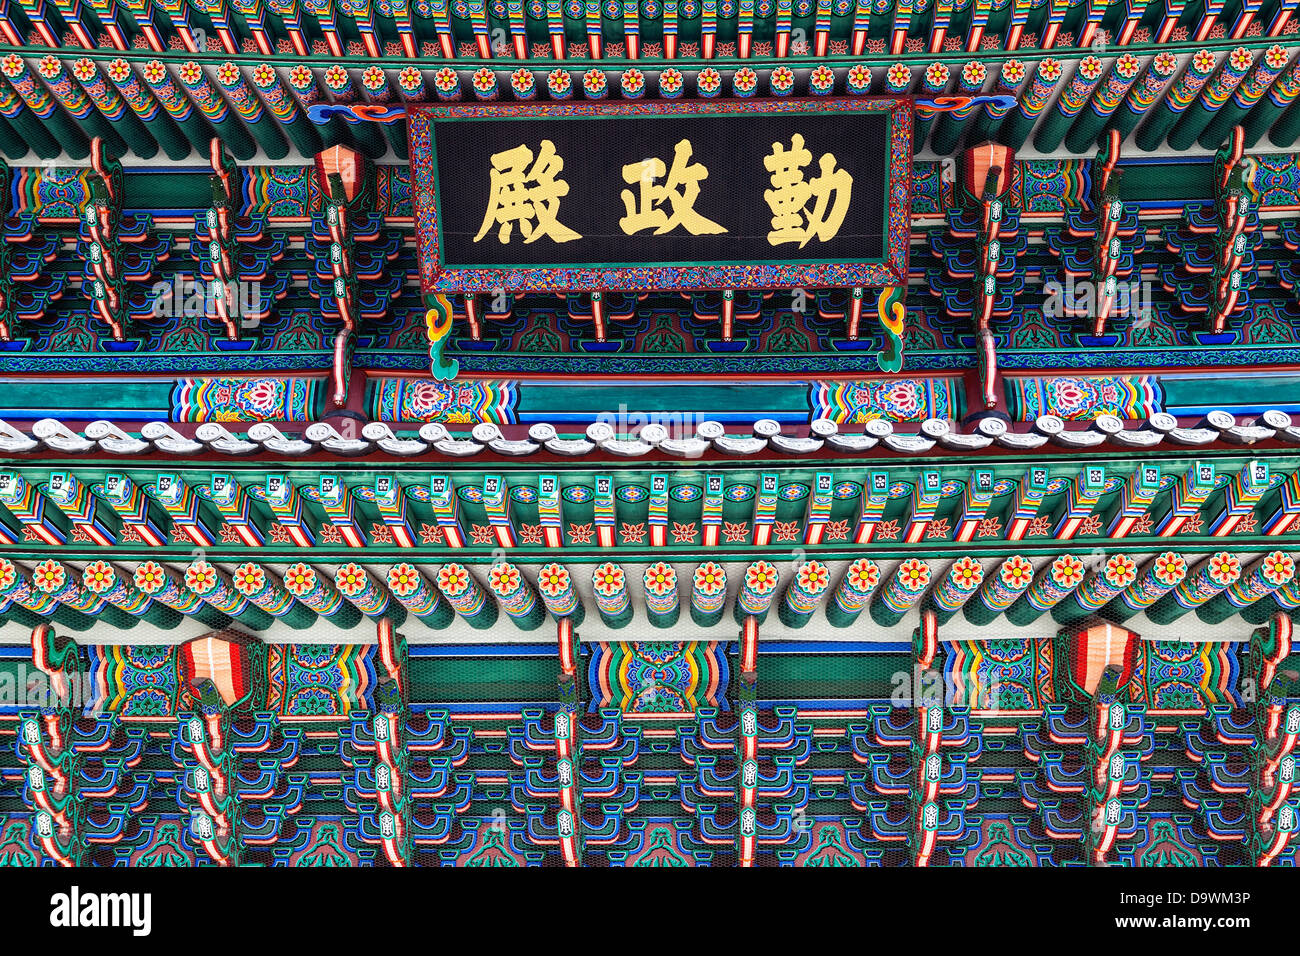 Gyeongbokgung Palace, Palace of Shining Happiness, Seoul, South Korea, Asia - Stock Image